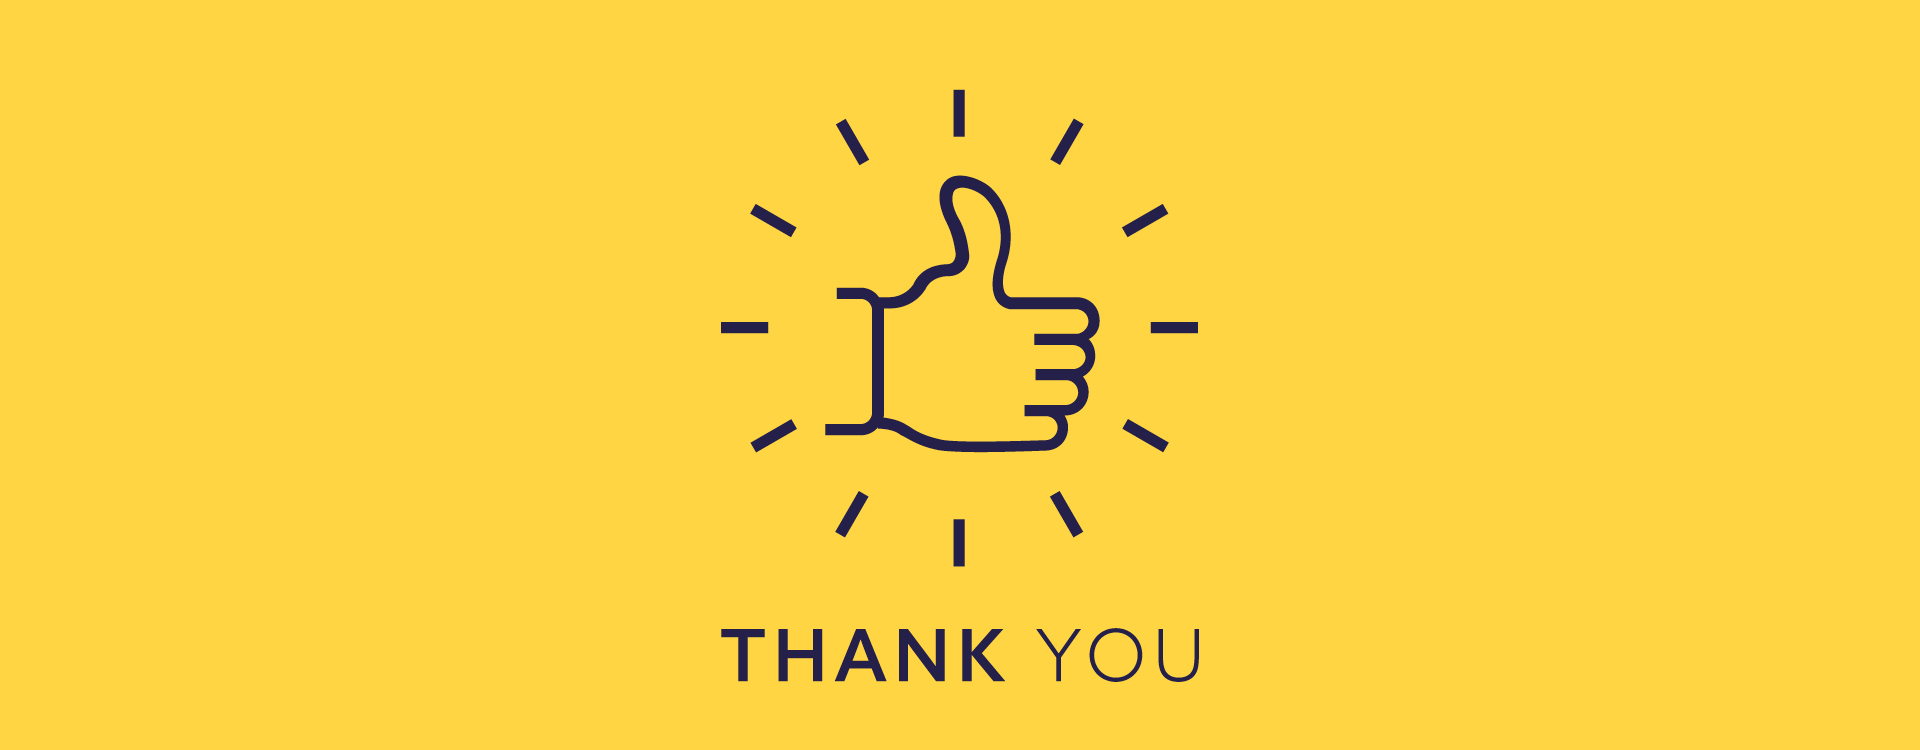 Milne Moser Internal Comms Thank You Thumbs Up